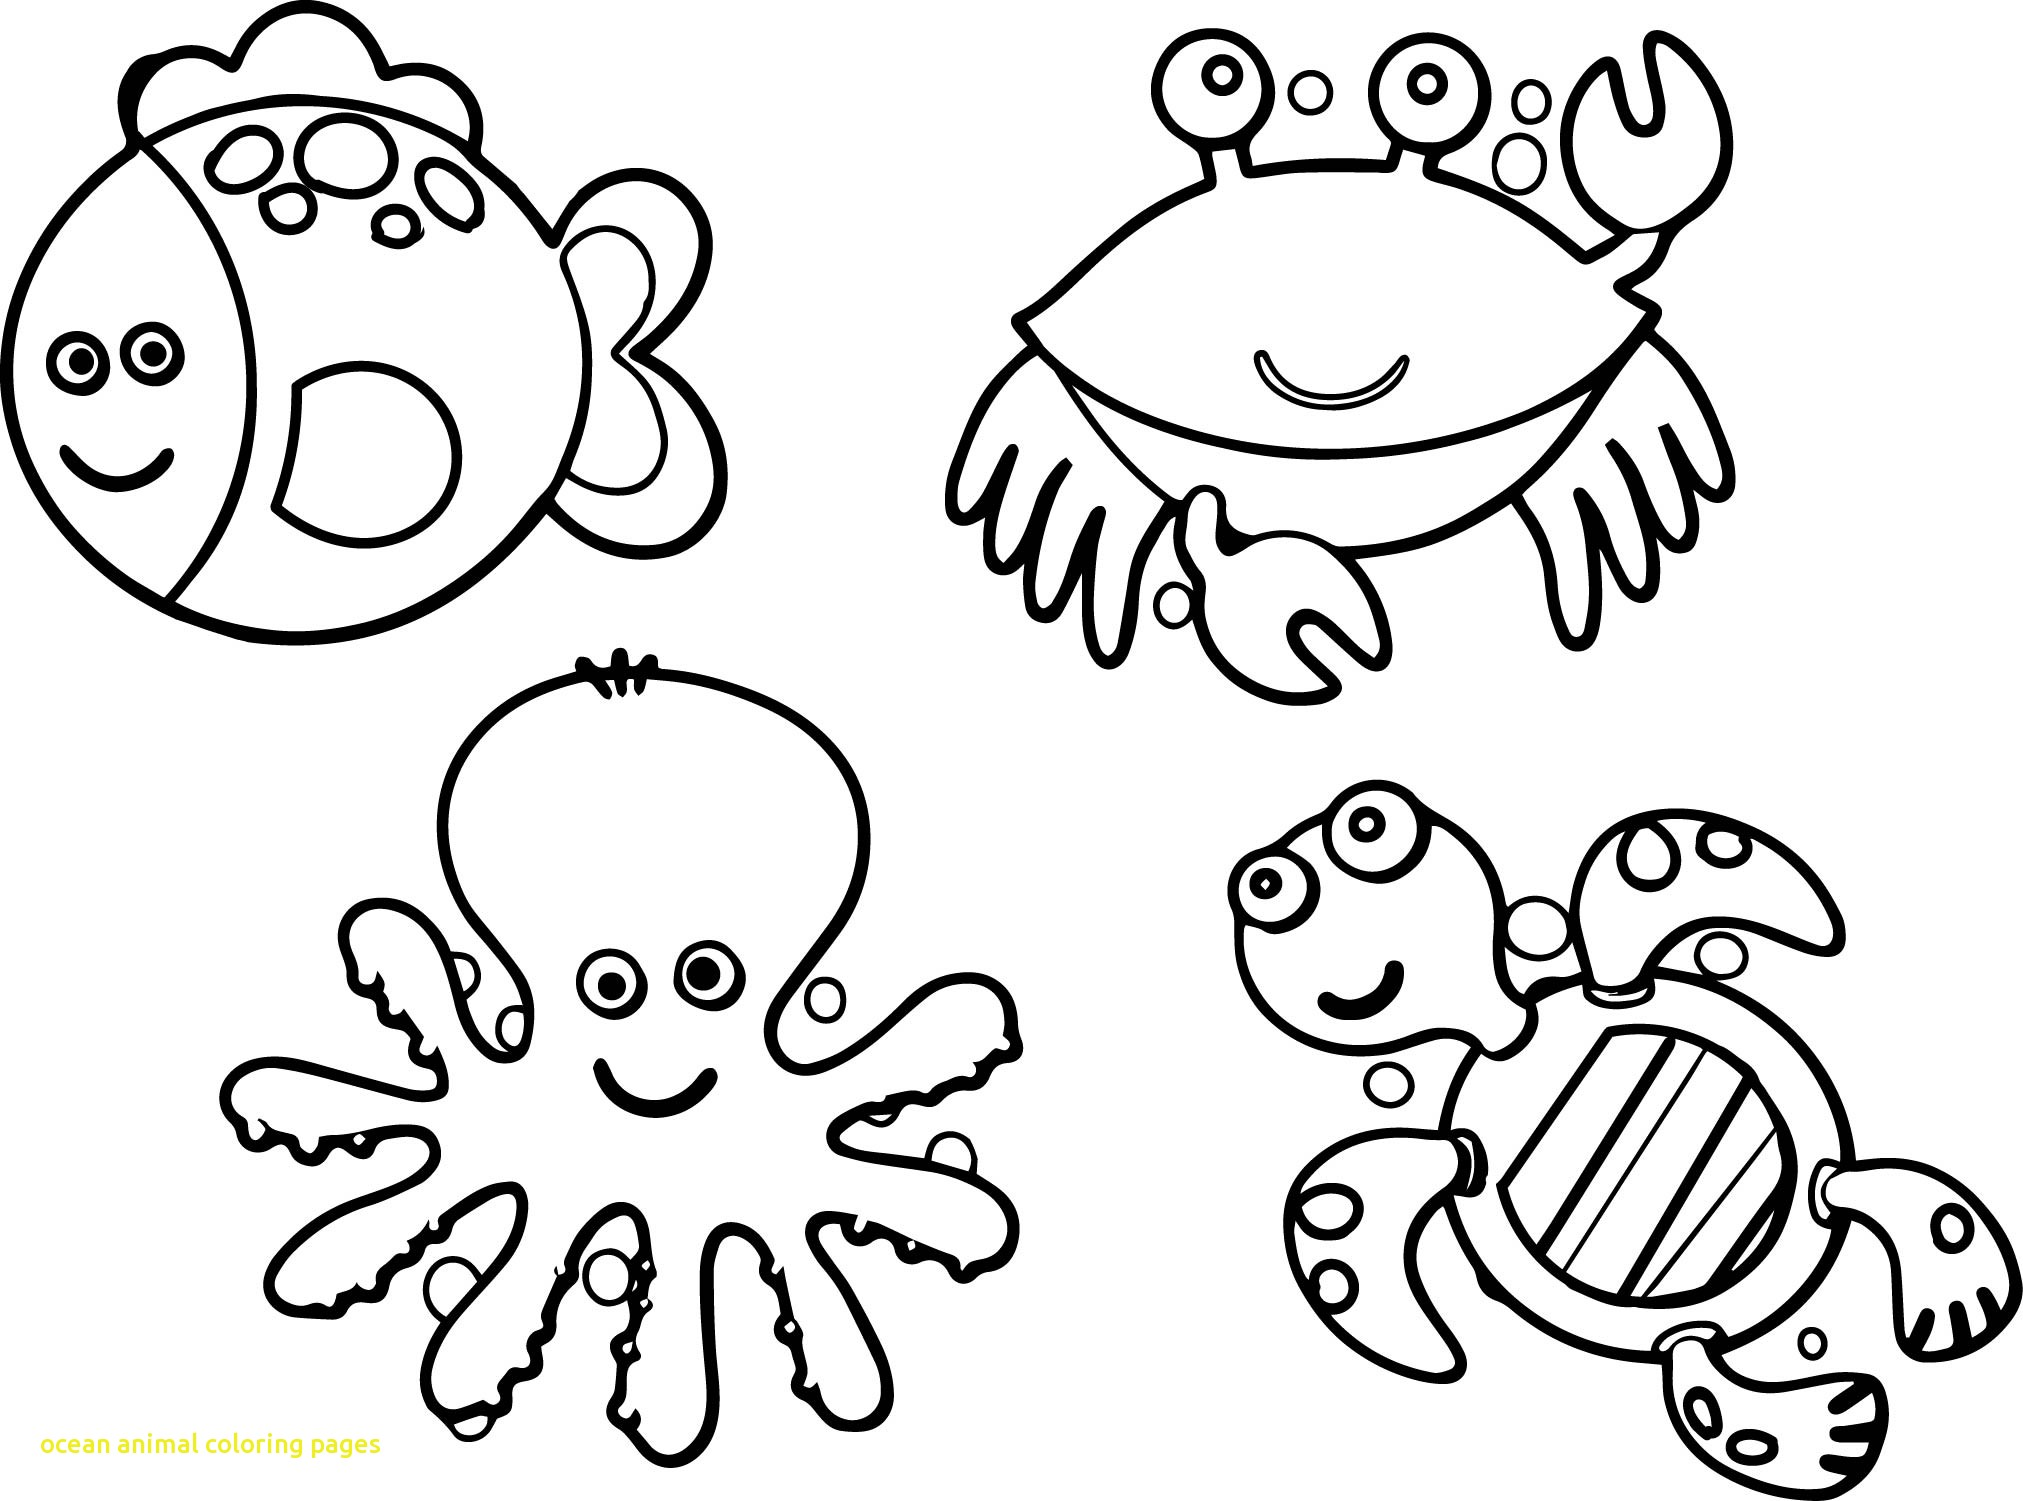 Sea Animals Coloring Pages For Kids At Getcolorings